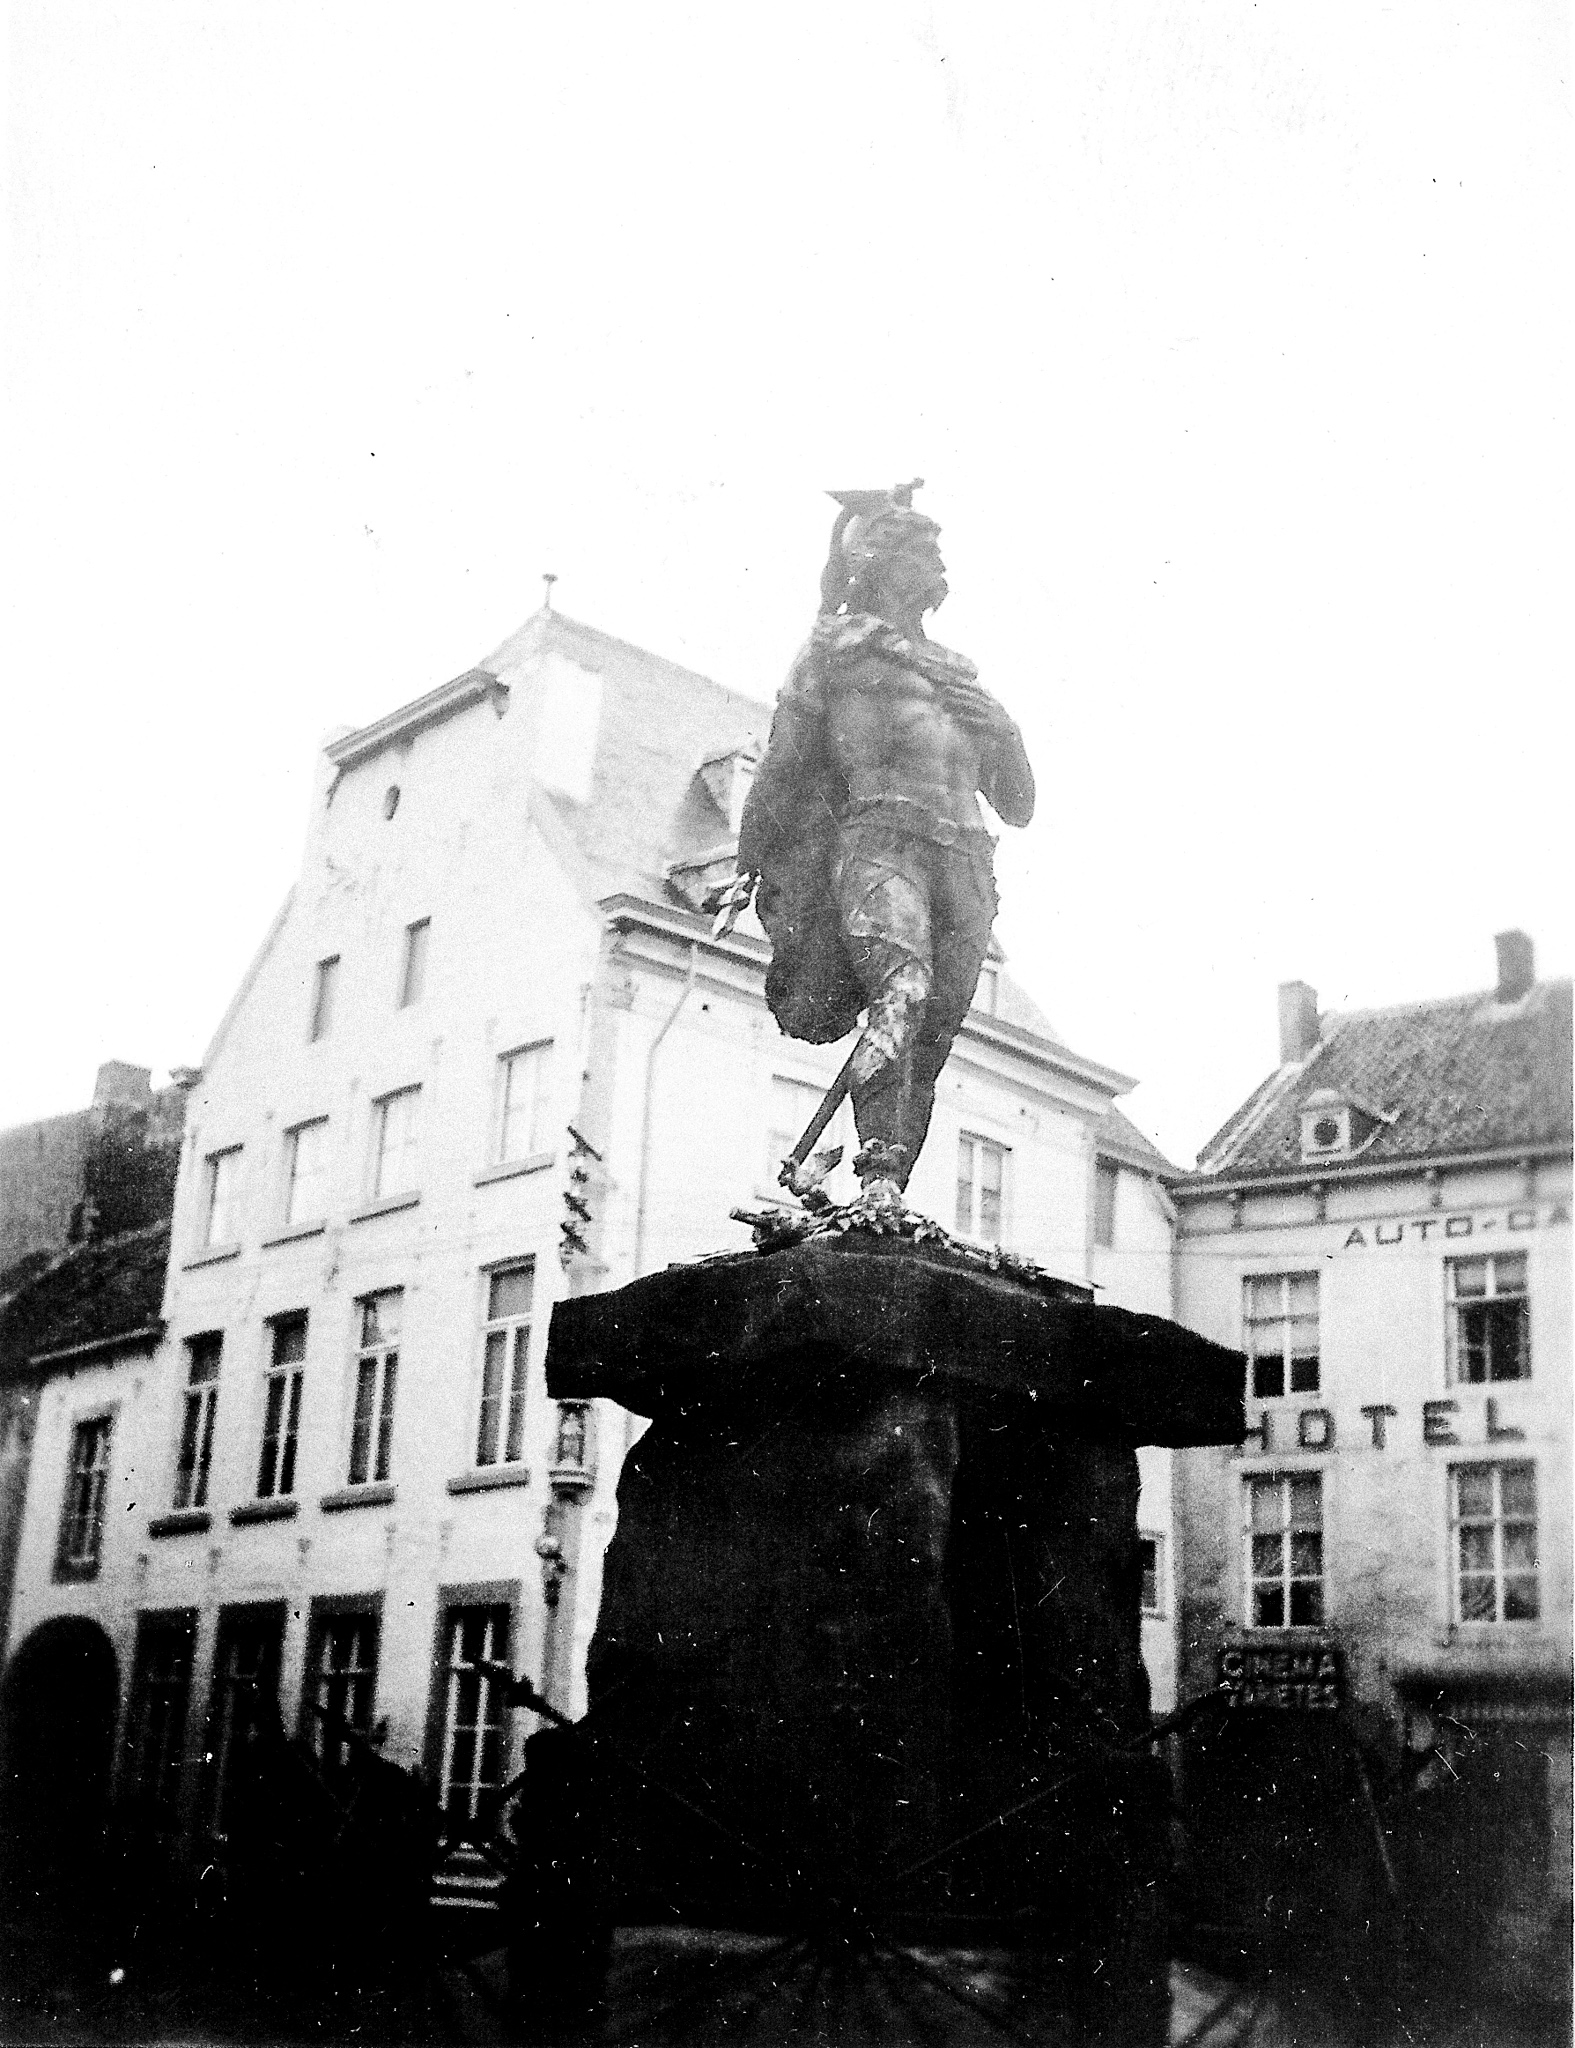 black and white photo of a statue